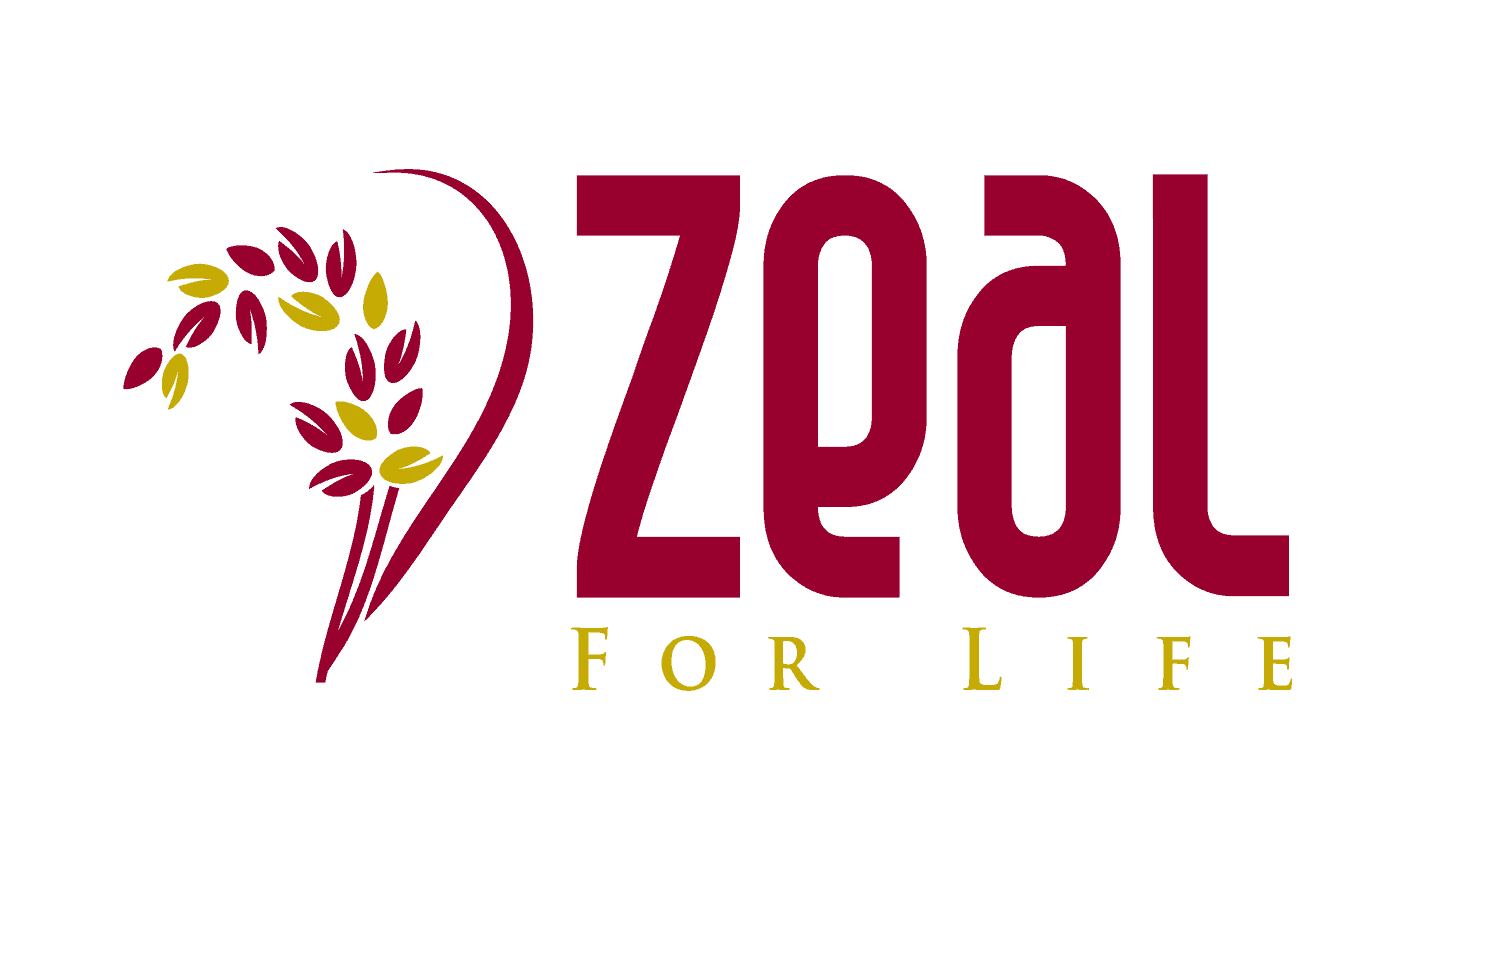 Zeal For Life Quote